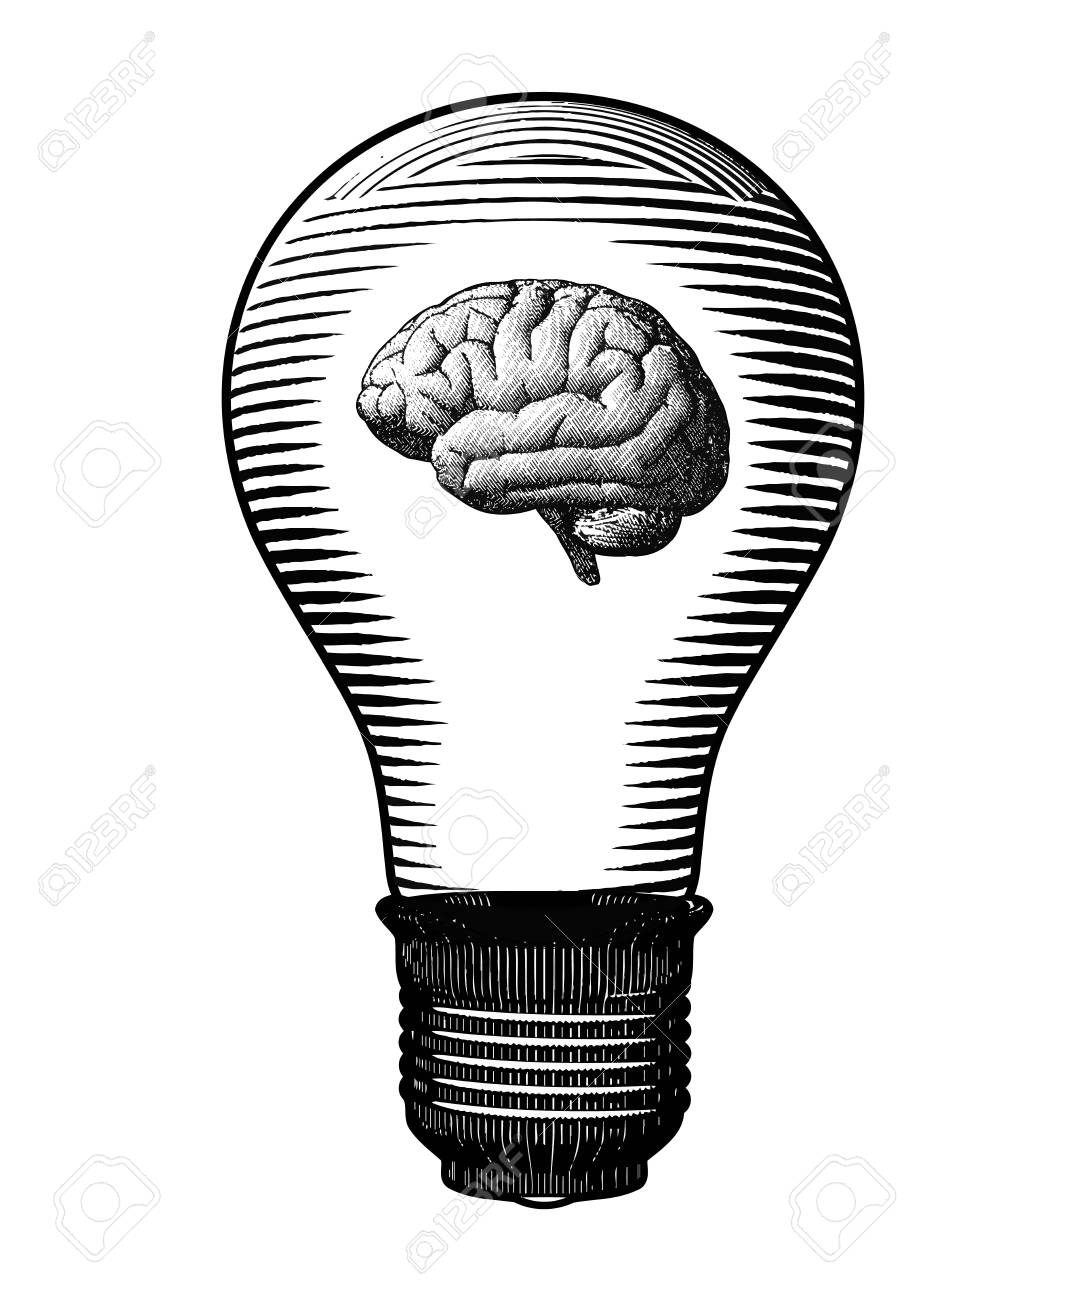 Brain Inside The Light Bulb Black And White Engraving Drawing